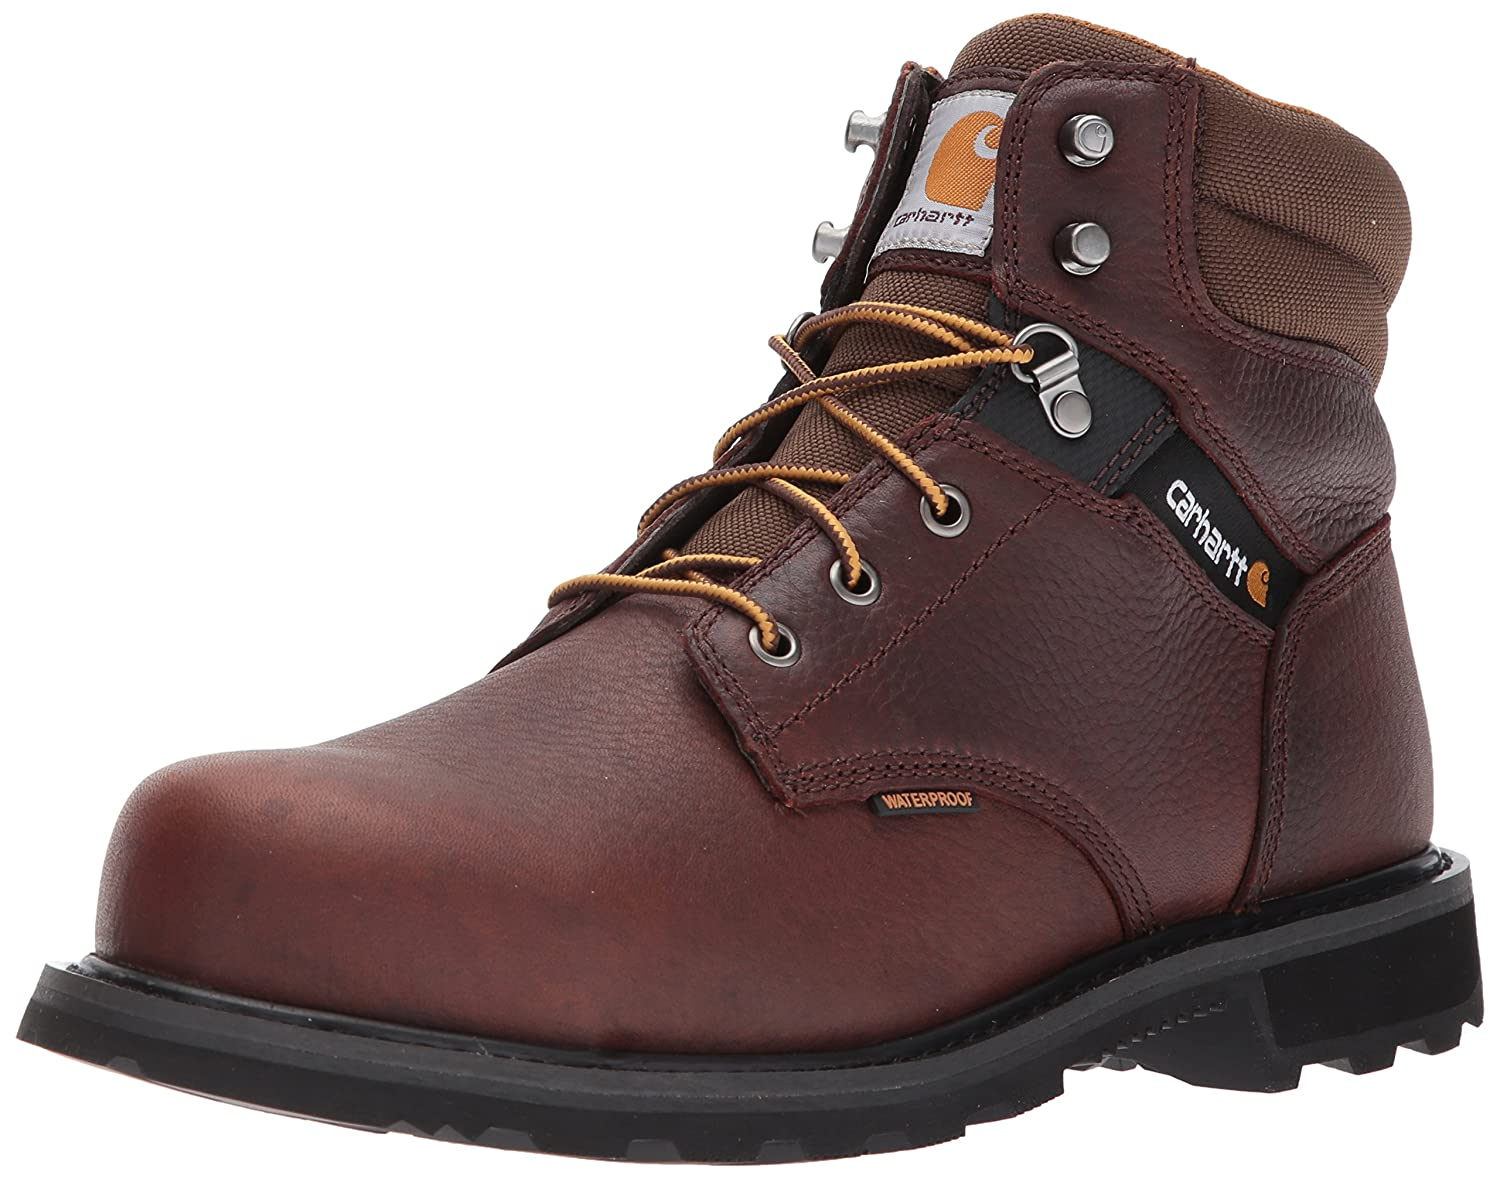 Carhartt メンズ Carhartt Men's 6